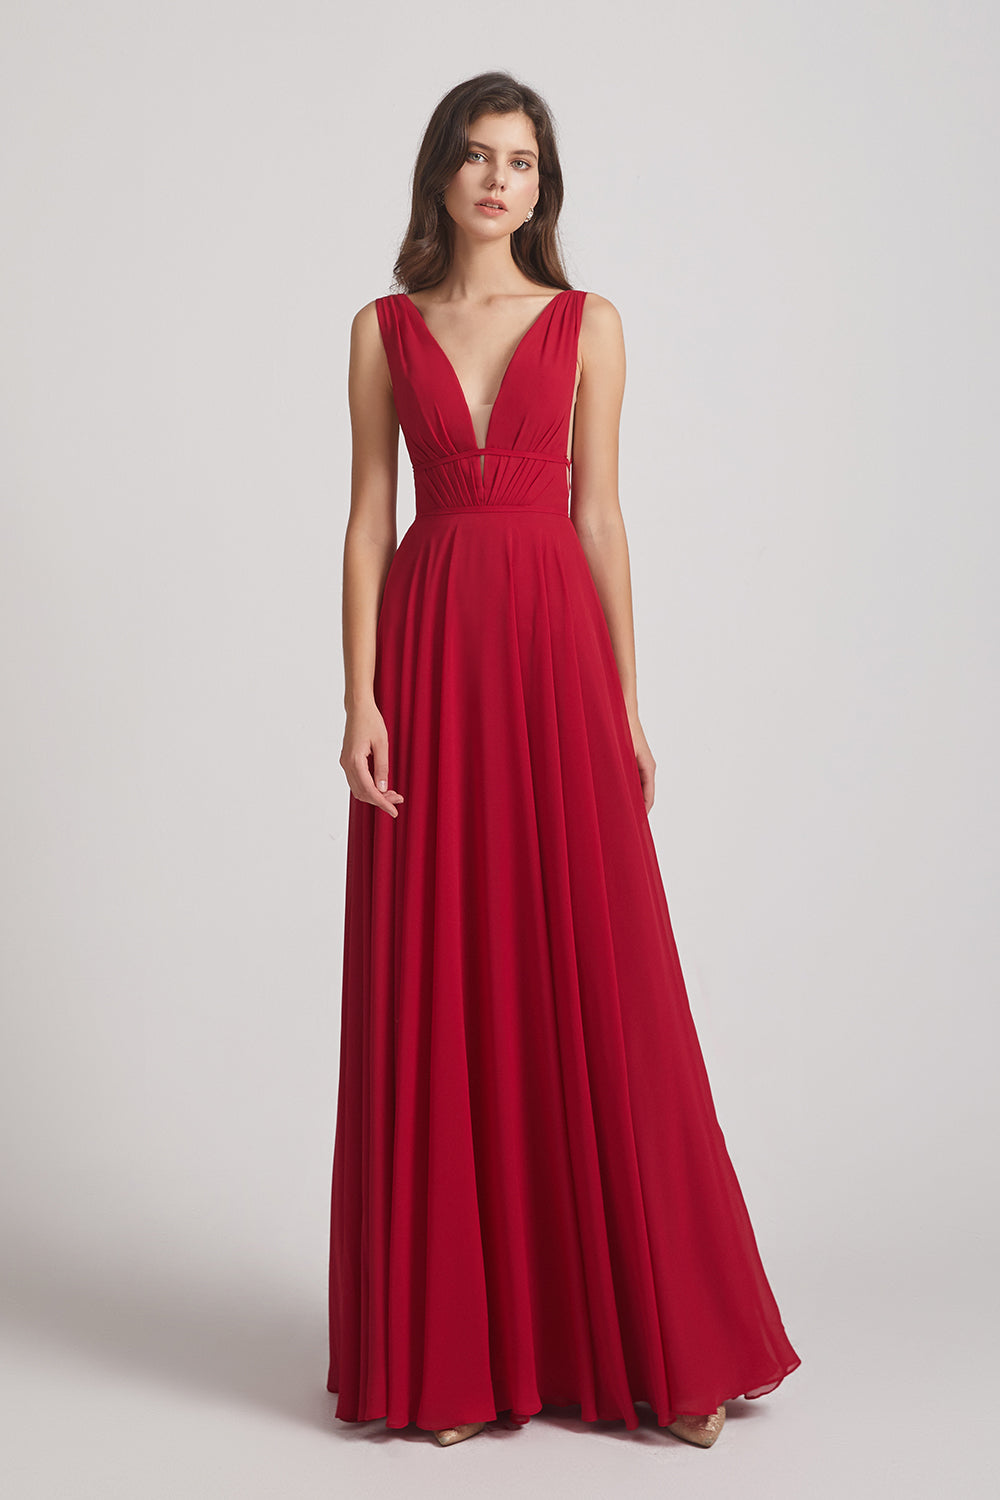 deep v-neck bridesmaids dresses